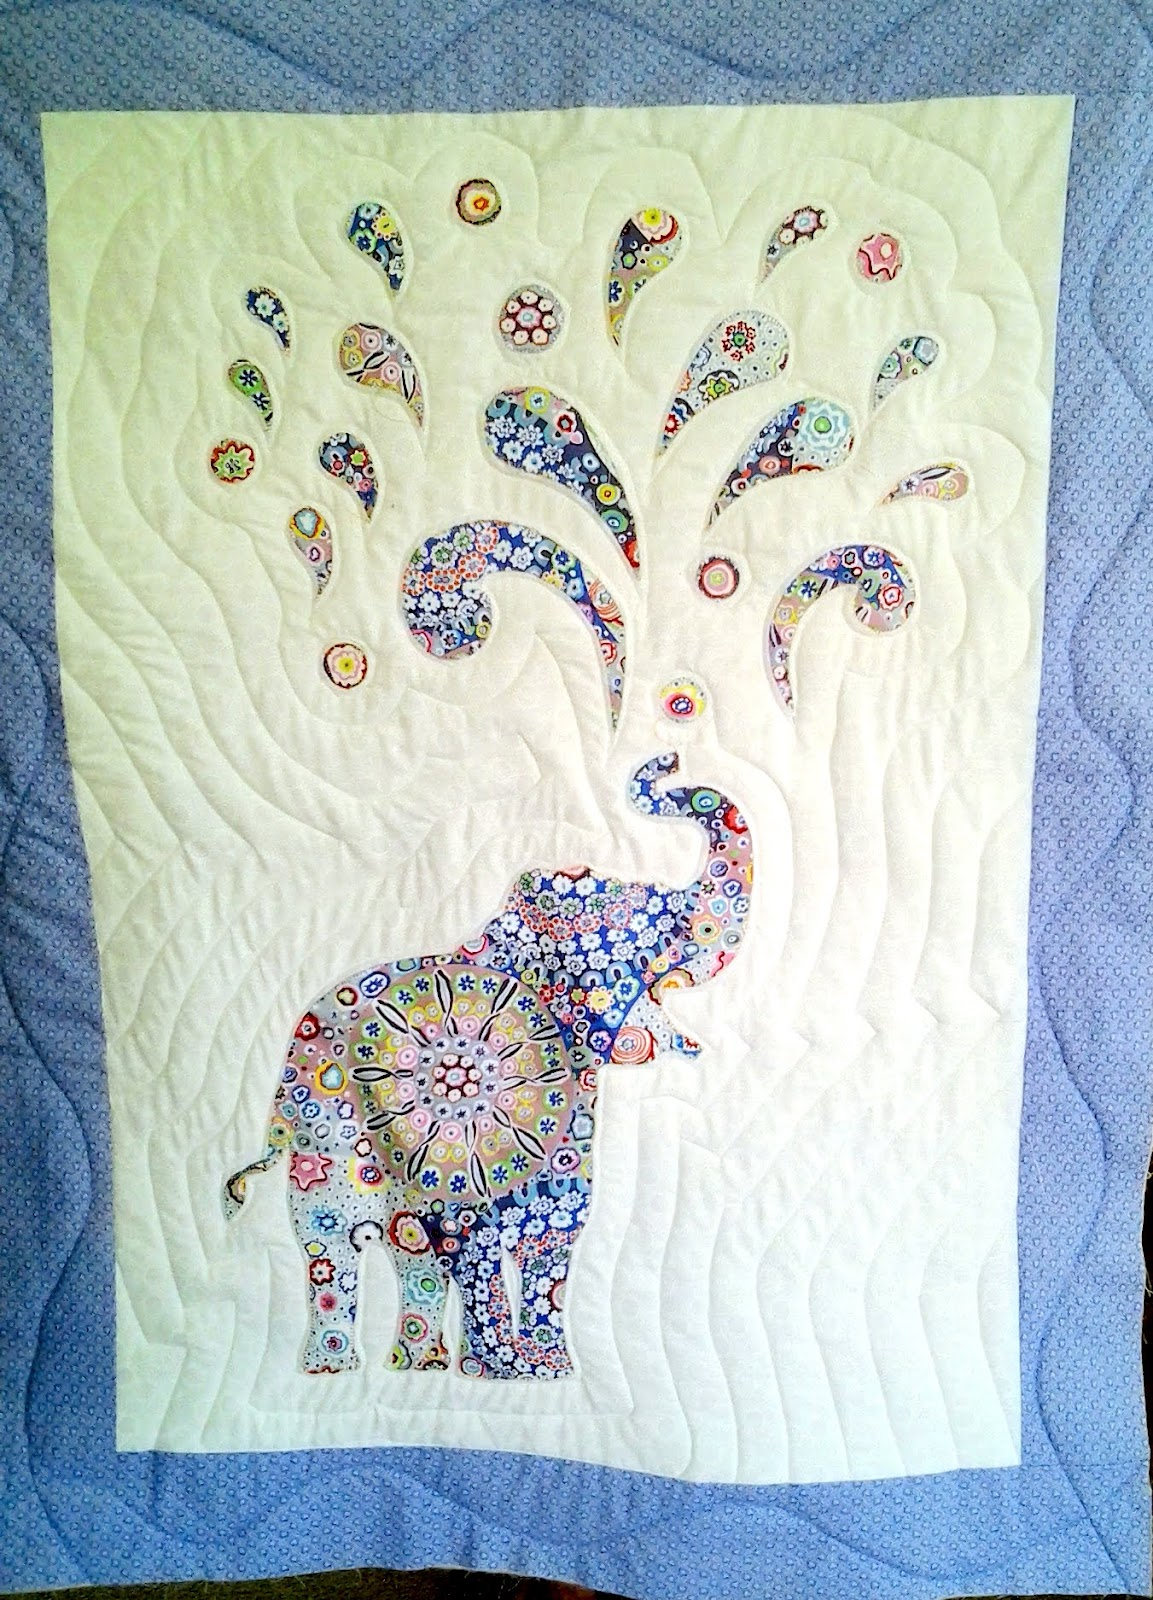 Her 2nd Grandchild And Has Of Course Been Busy Sewing Making This Gorgeous Little Quilt She Adapted It From A Free Pattern Paisley Splash That